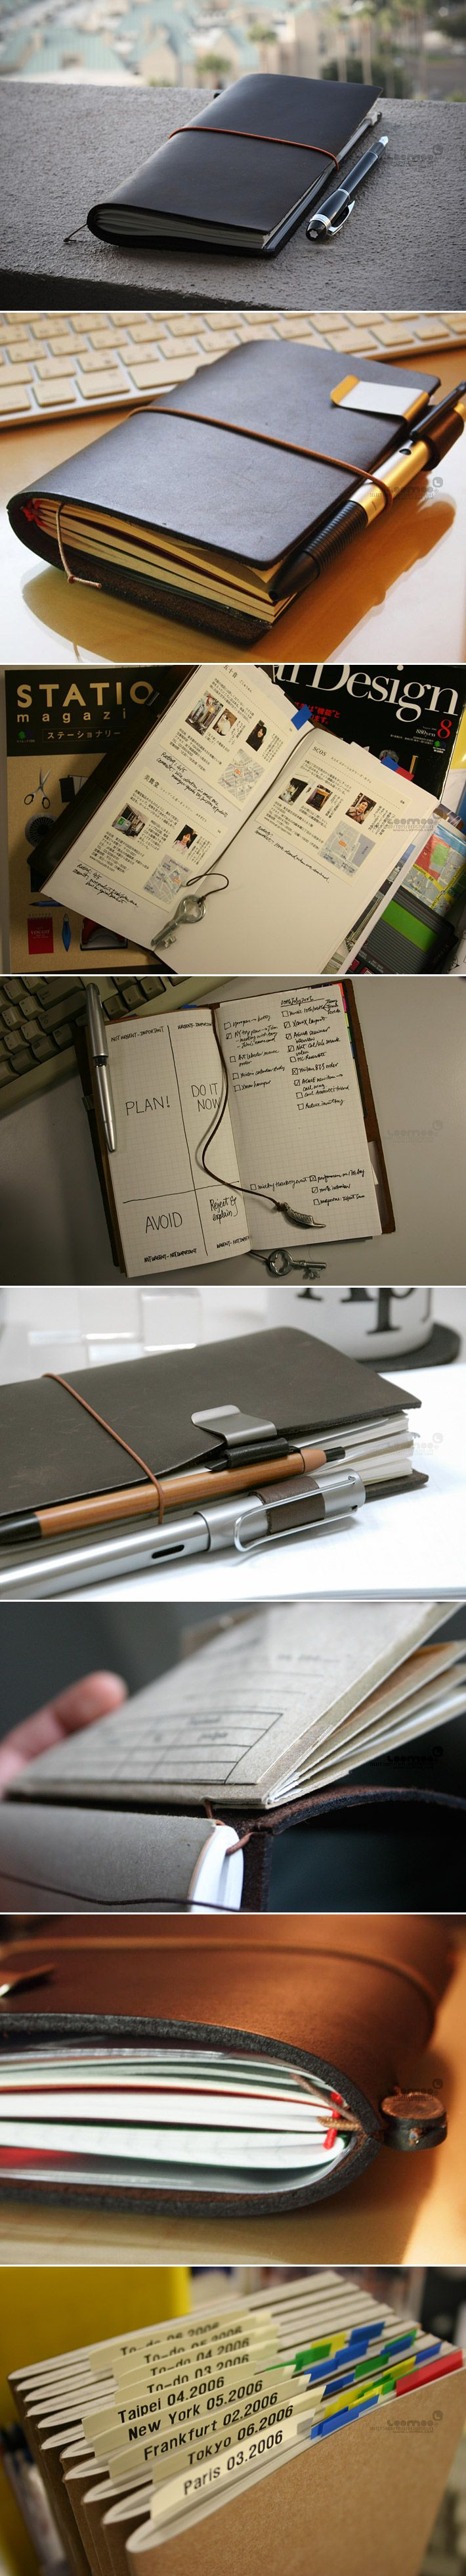 INFMETRY:: Midori Traveler's Notebook - Office Supplies - Home